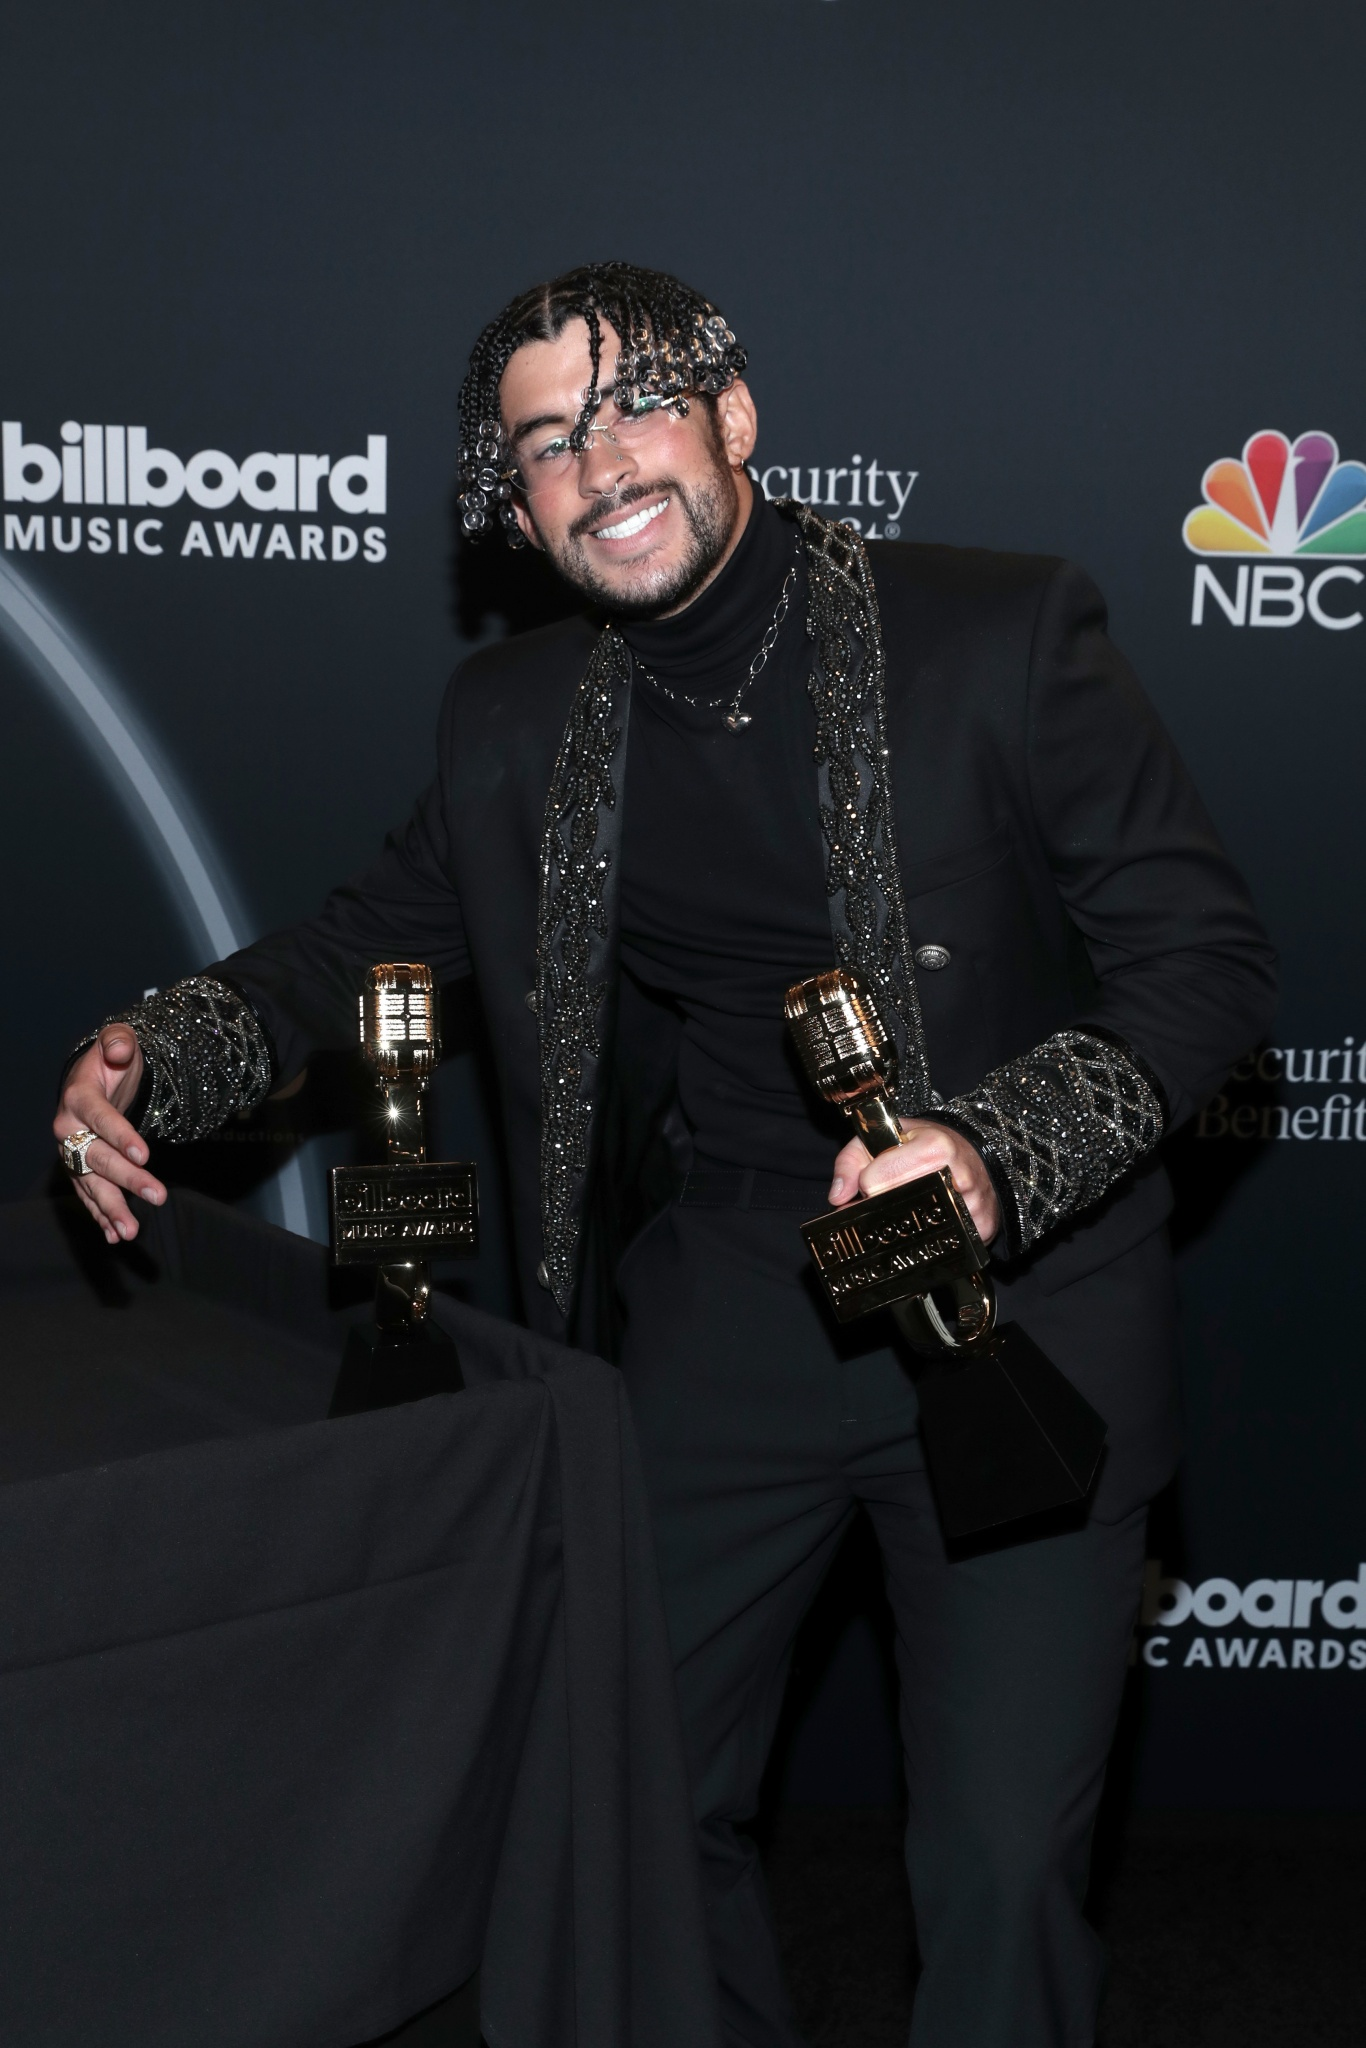 Bad Bunny triunfa en los Billboard Music Awards 2020